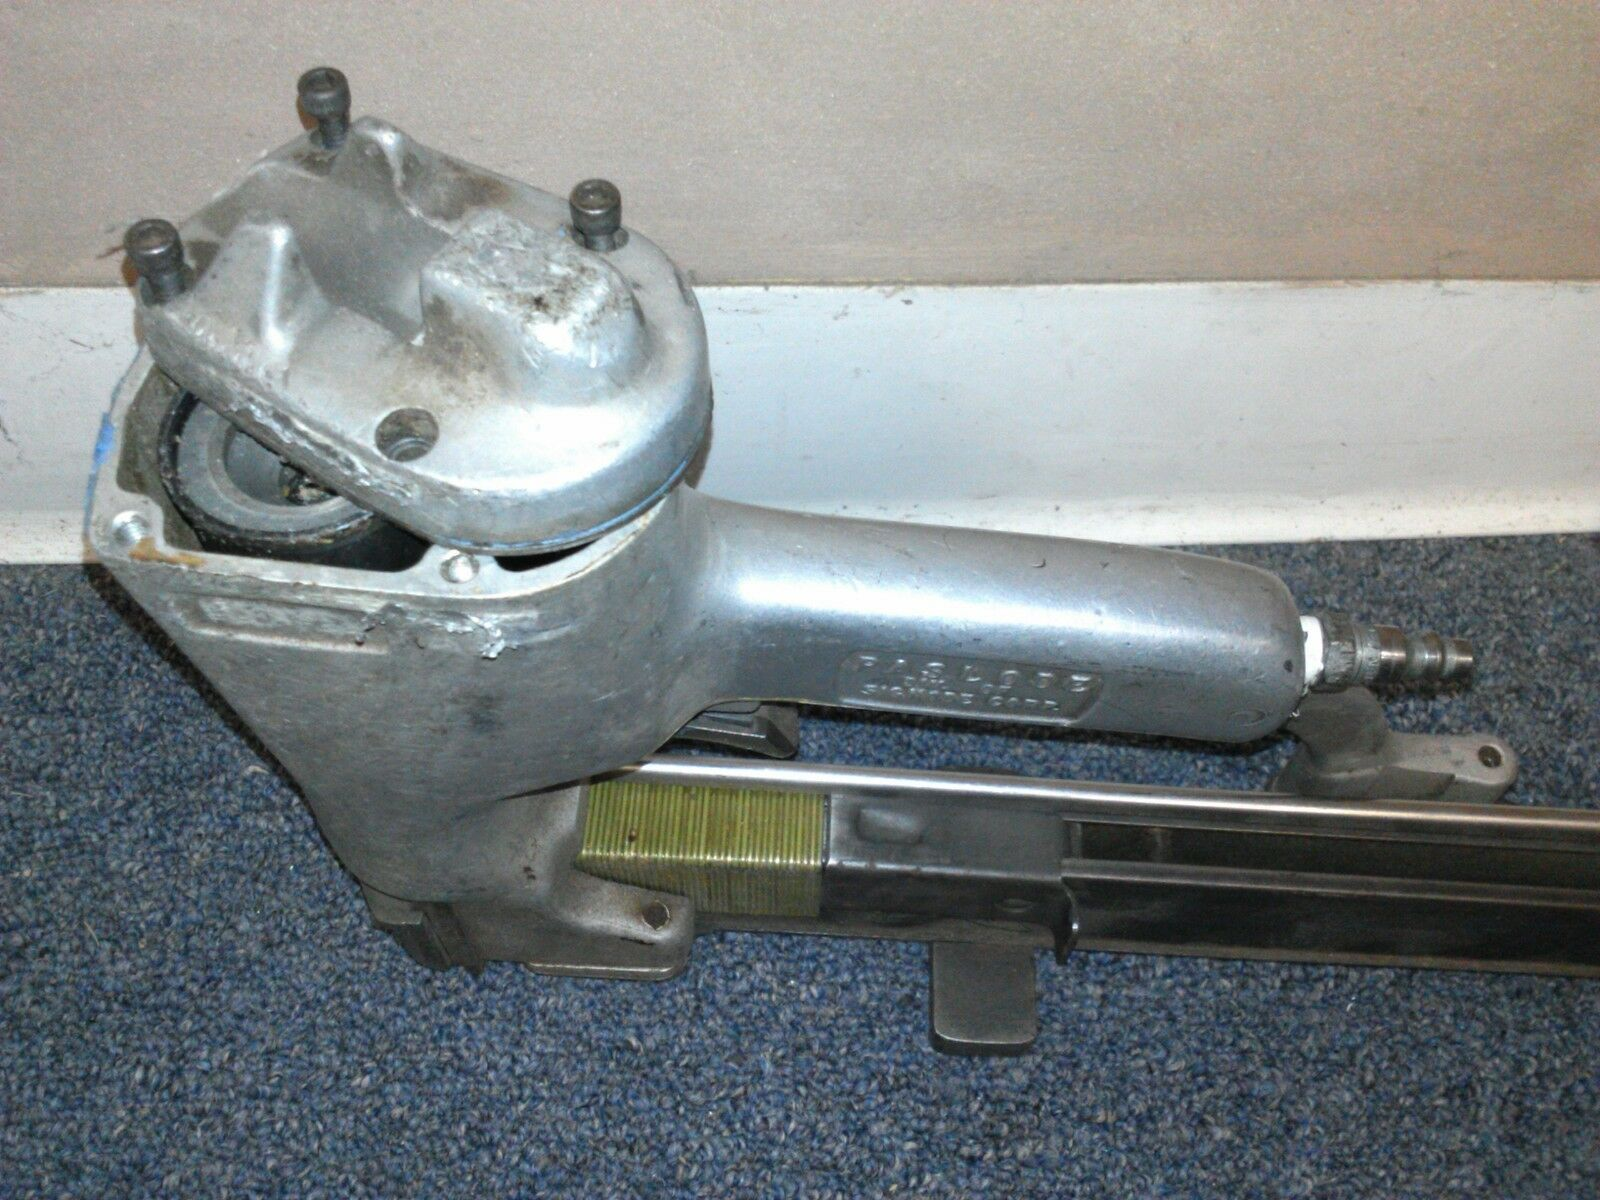 USED 400049 HOUSING FOR PASLODE MU112W16R STAPLER - ENTIRE PICTURE NOT FOR SALE